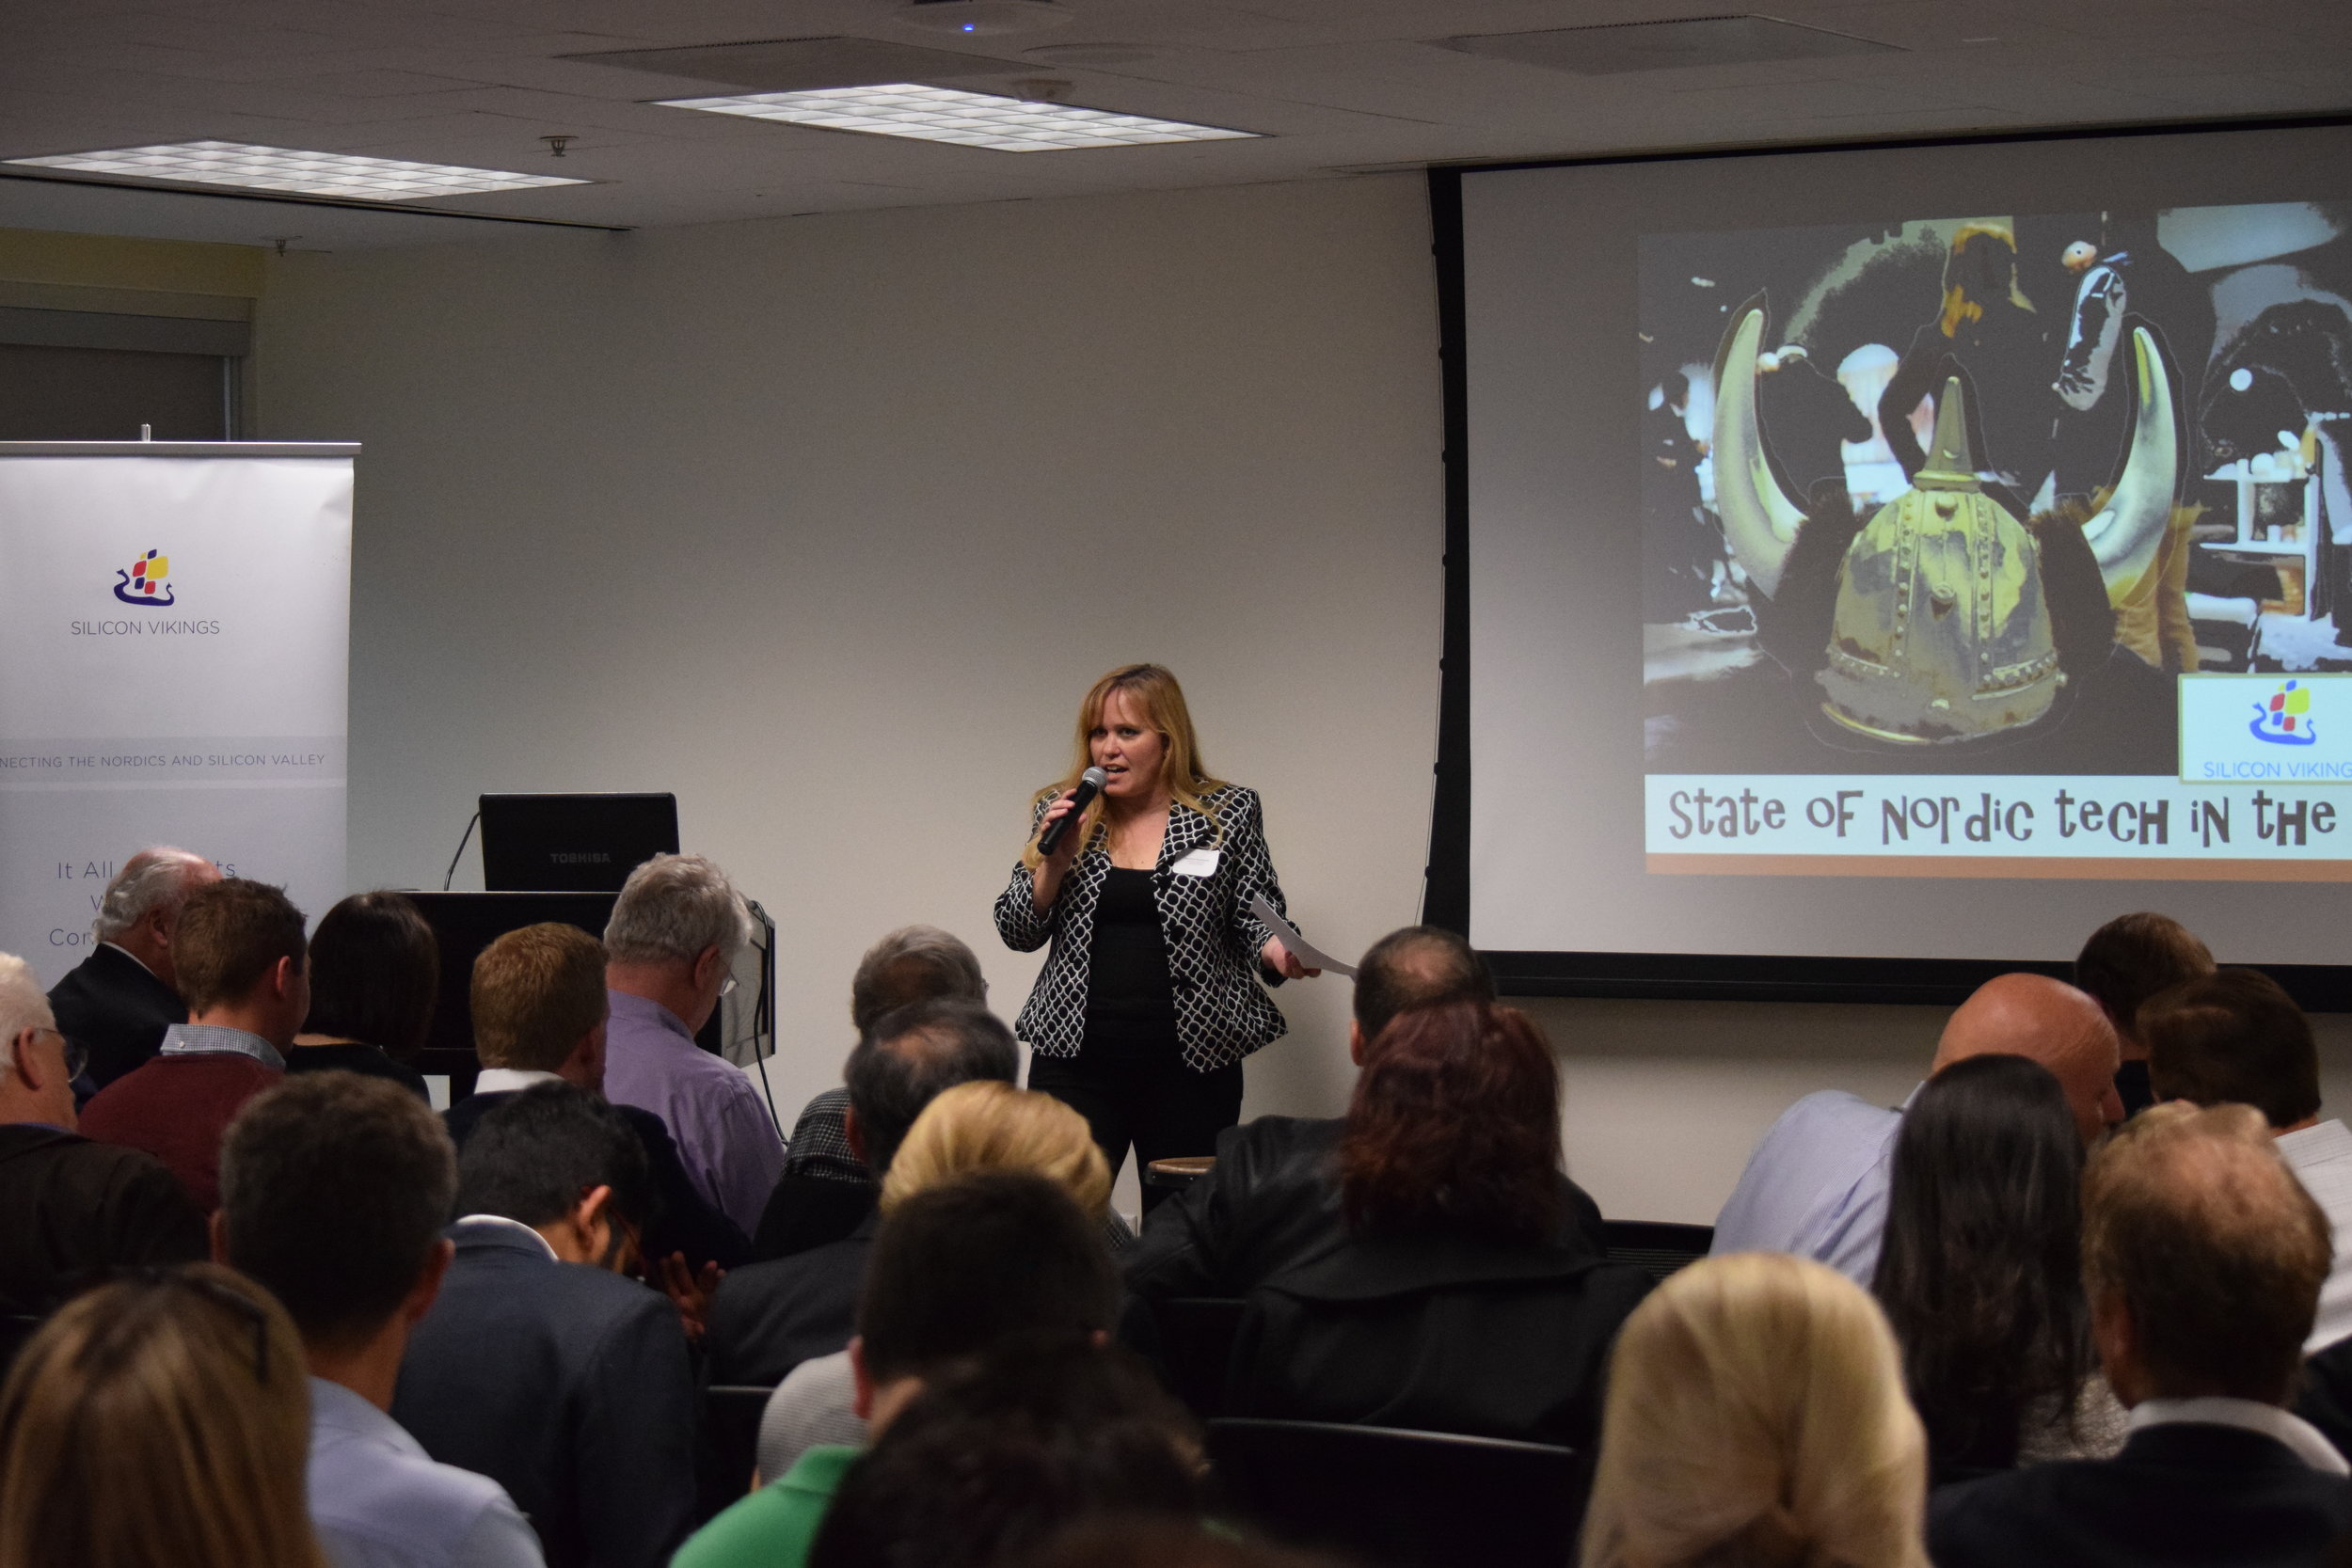 Charlotte Danielsson speaking at the 'State of Nordic Tech in the Bay' event she organized in 2016 bringing together Nordic Consuls, Trade Organizations, Venture Capitalists, Leading Nordic Companies such as Ericsson, Nokia & Spotify, and numerous Nordic Startups operating in the Bay Area